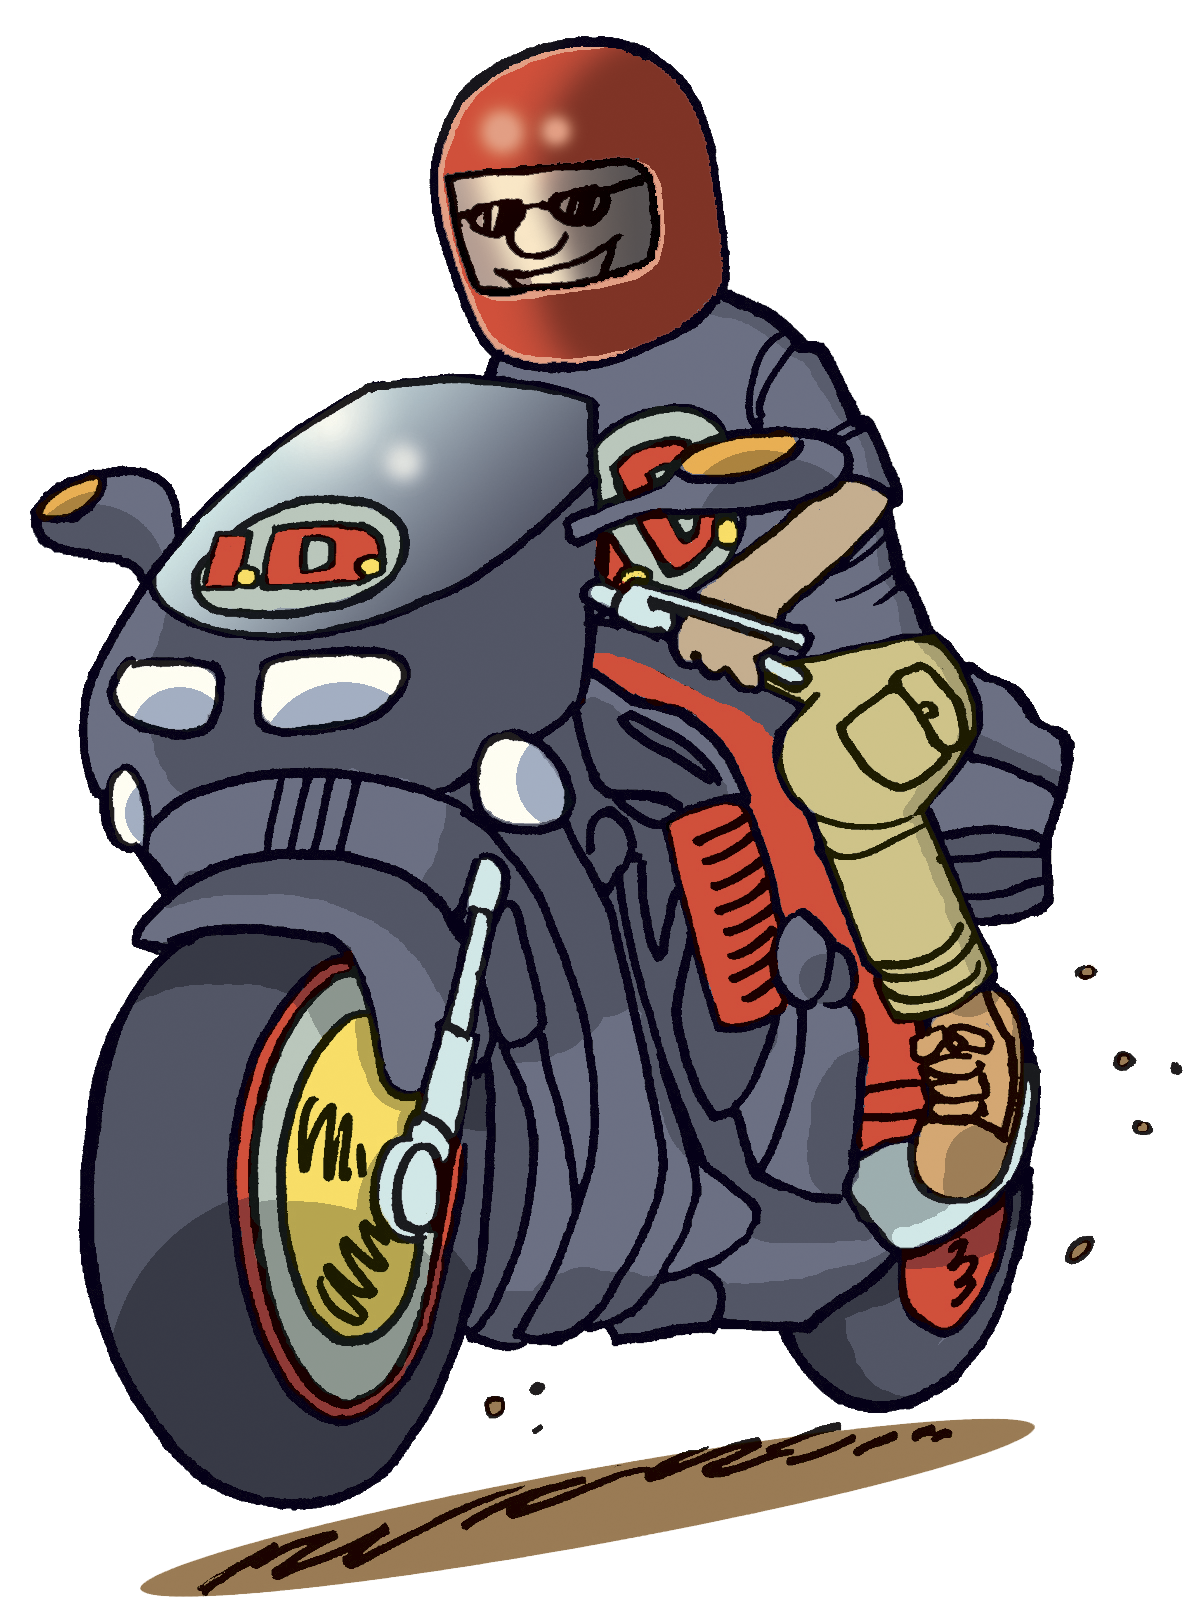 clipart download Atv clipart animated. Motorcycle riding gallery of.